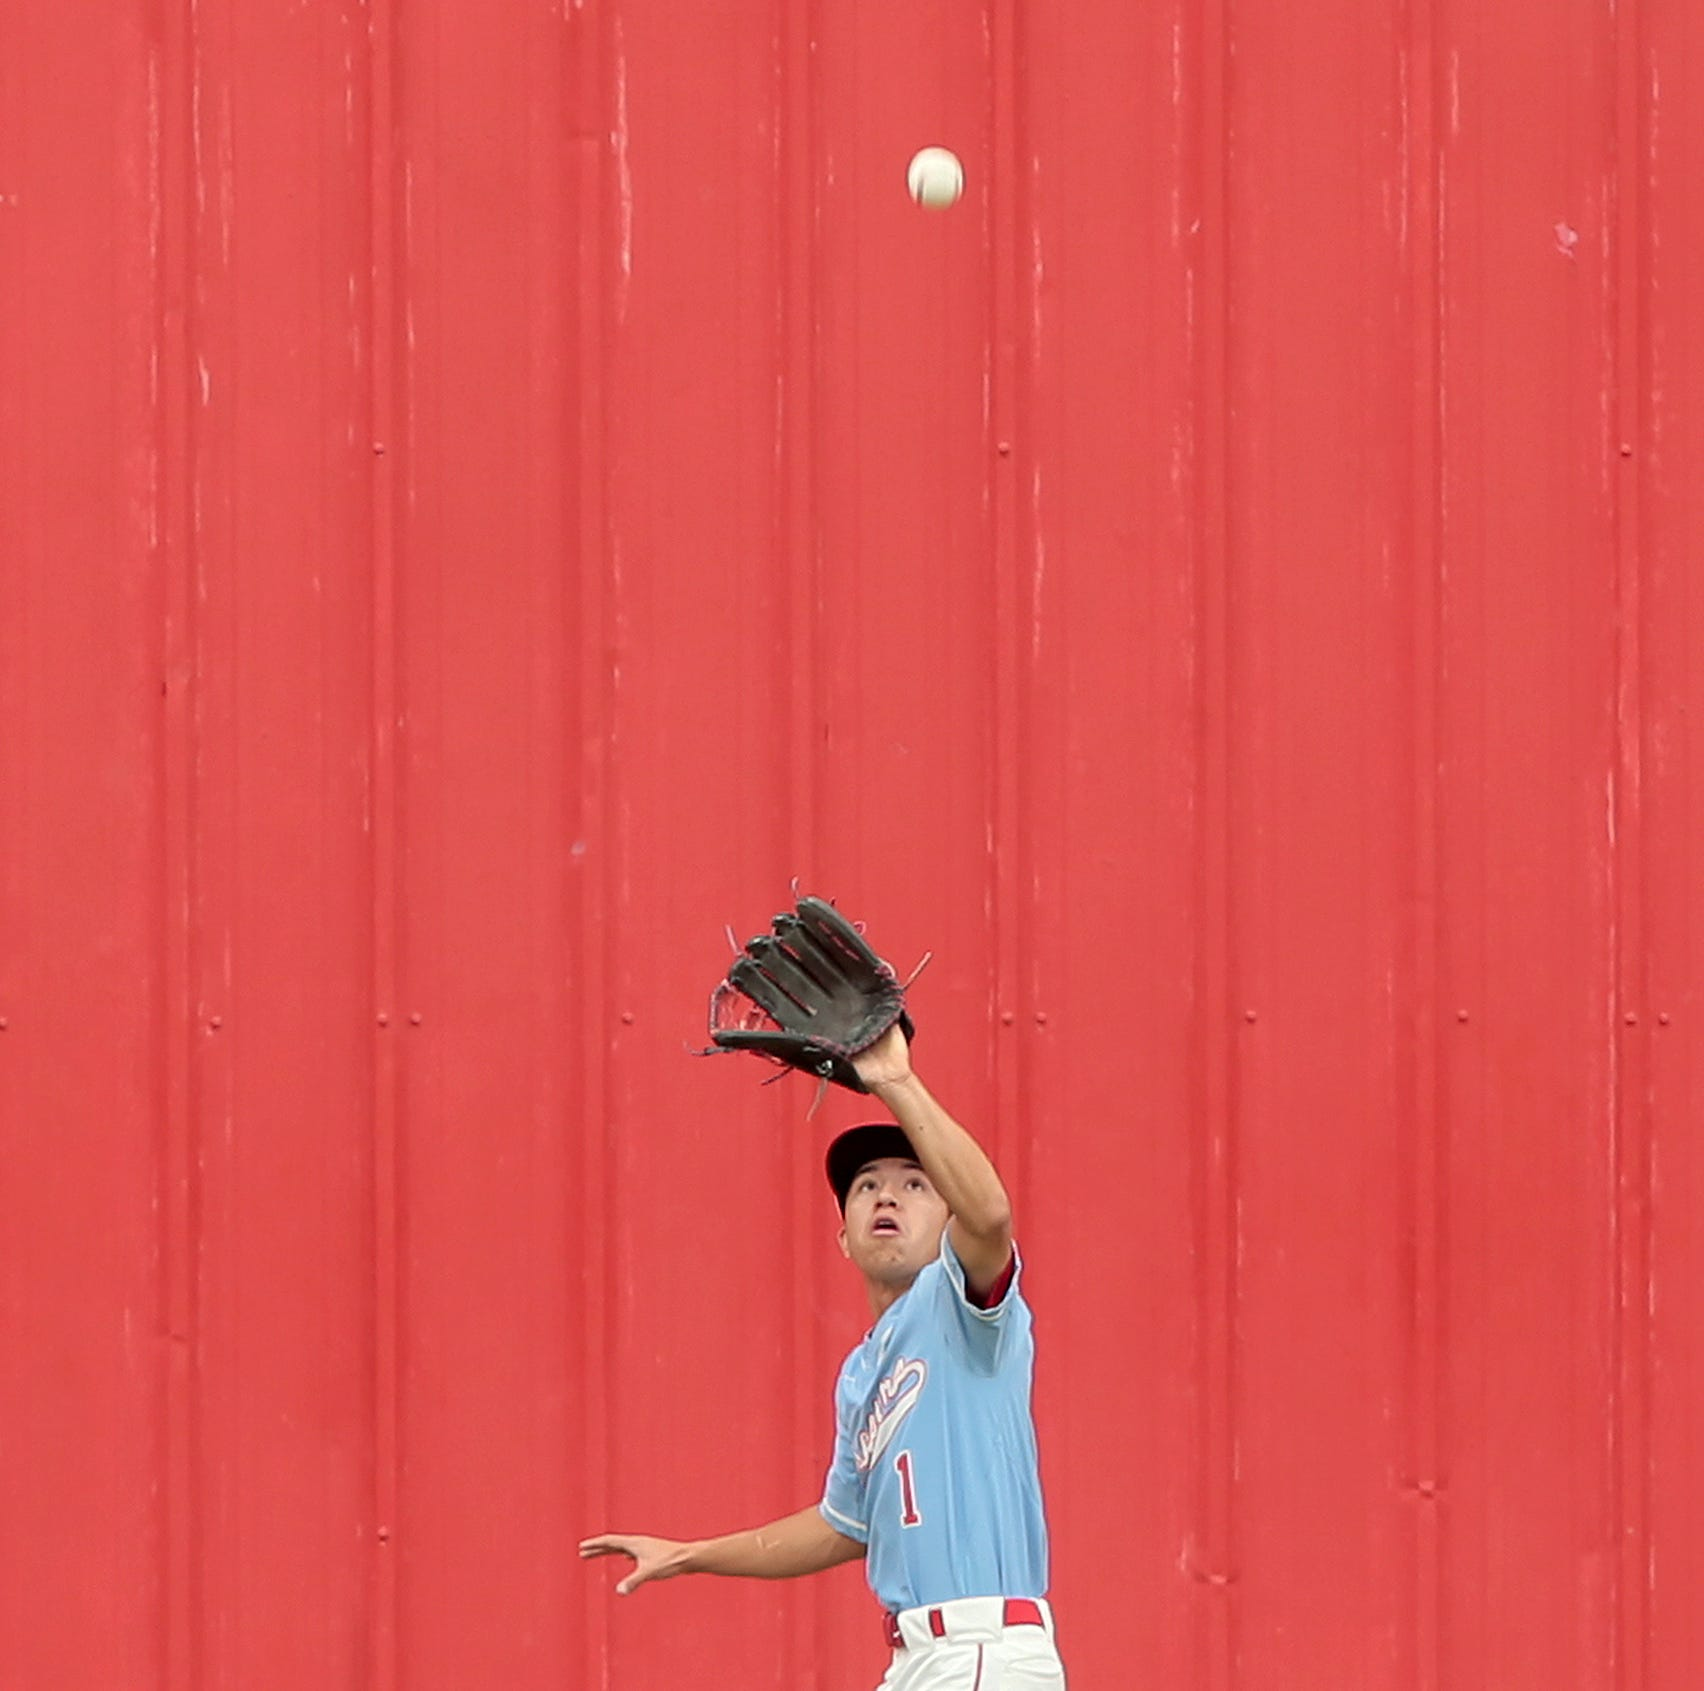 Socorro center fielder Chris Arras makes a play on a deep ball at the warning track during the Bulldogs' game Friday against Franklin.